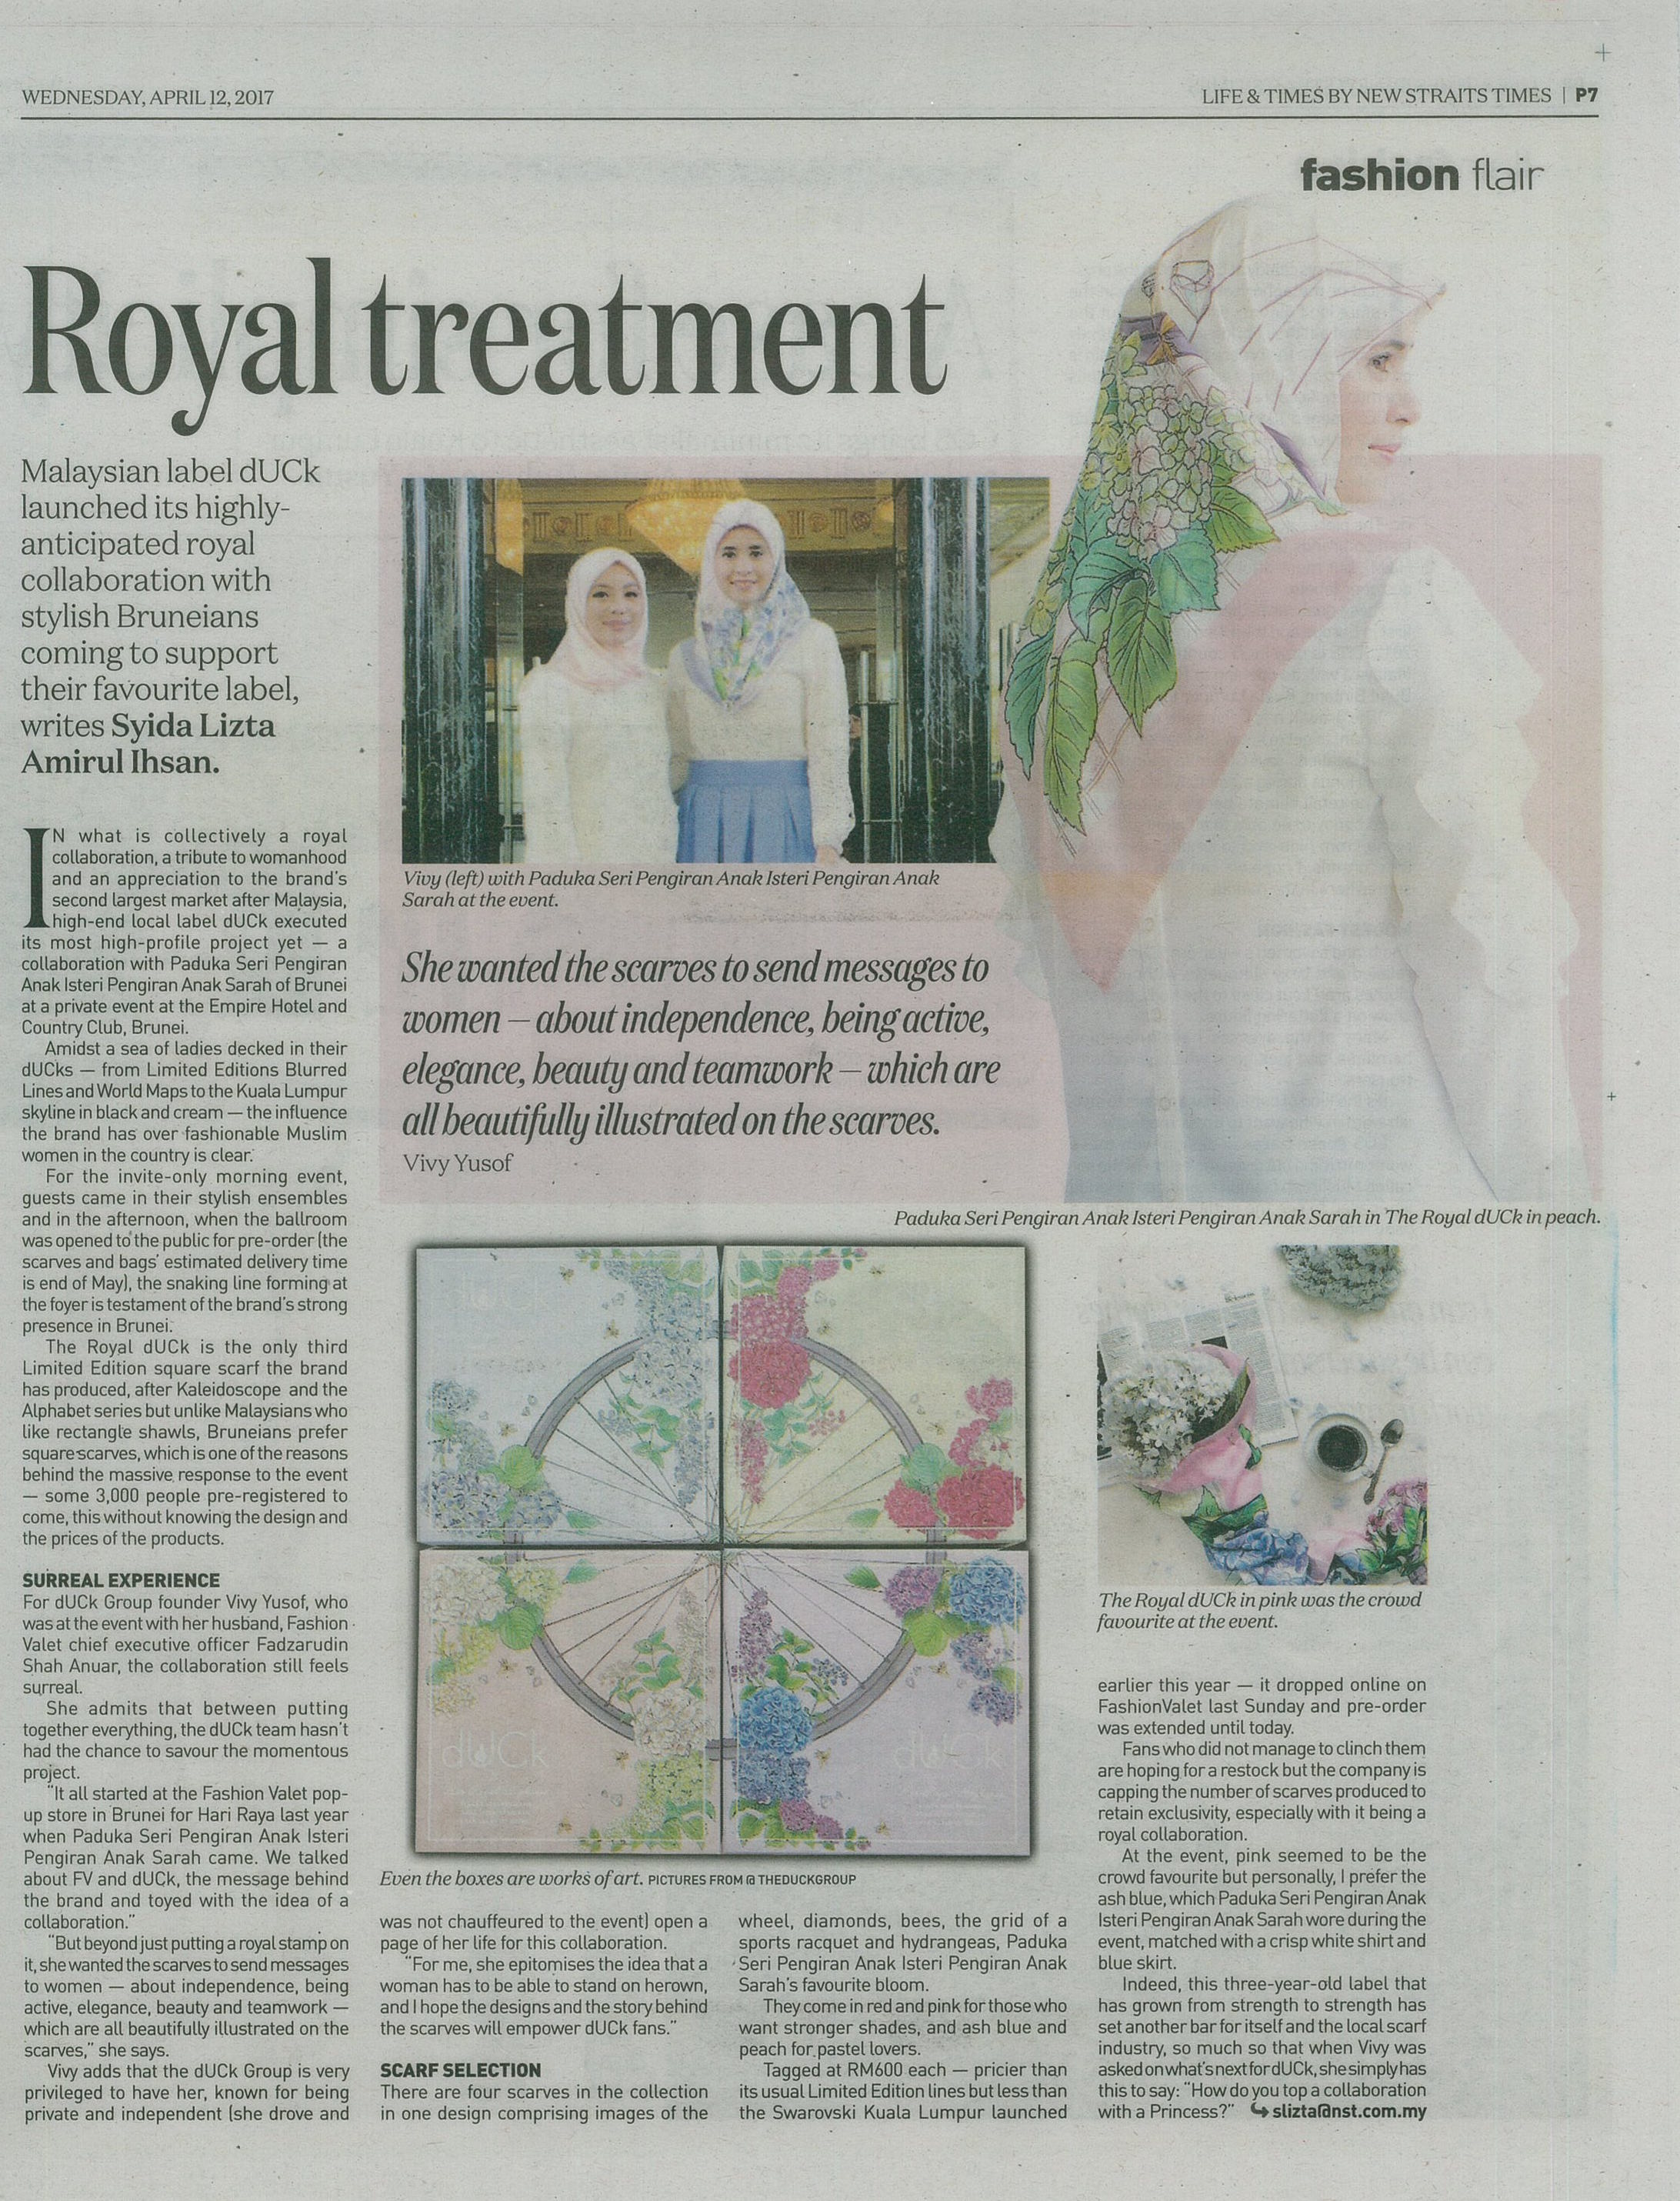 The New Straits Times - April